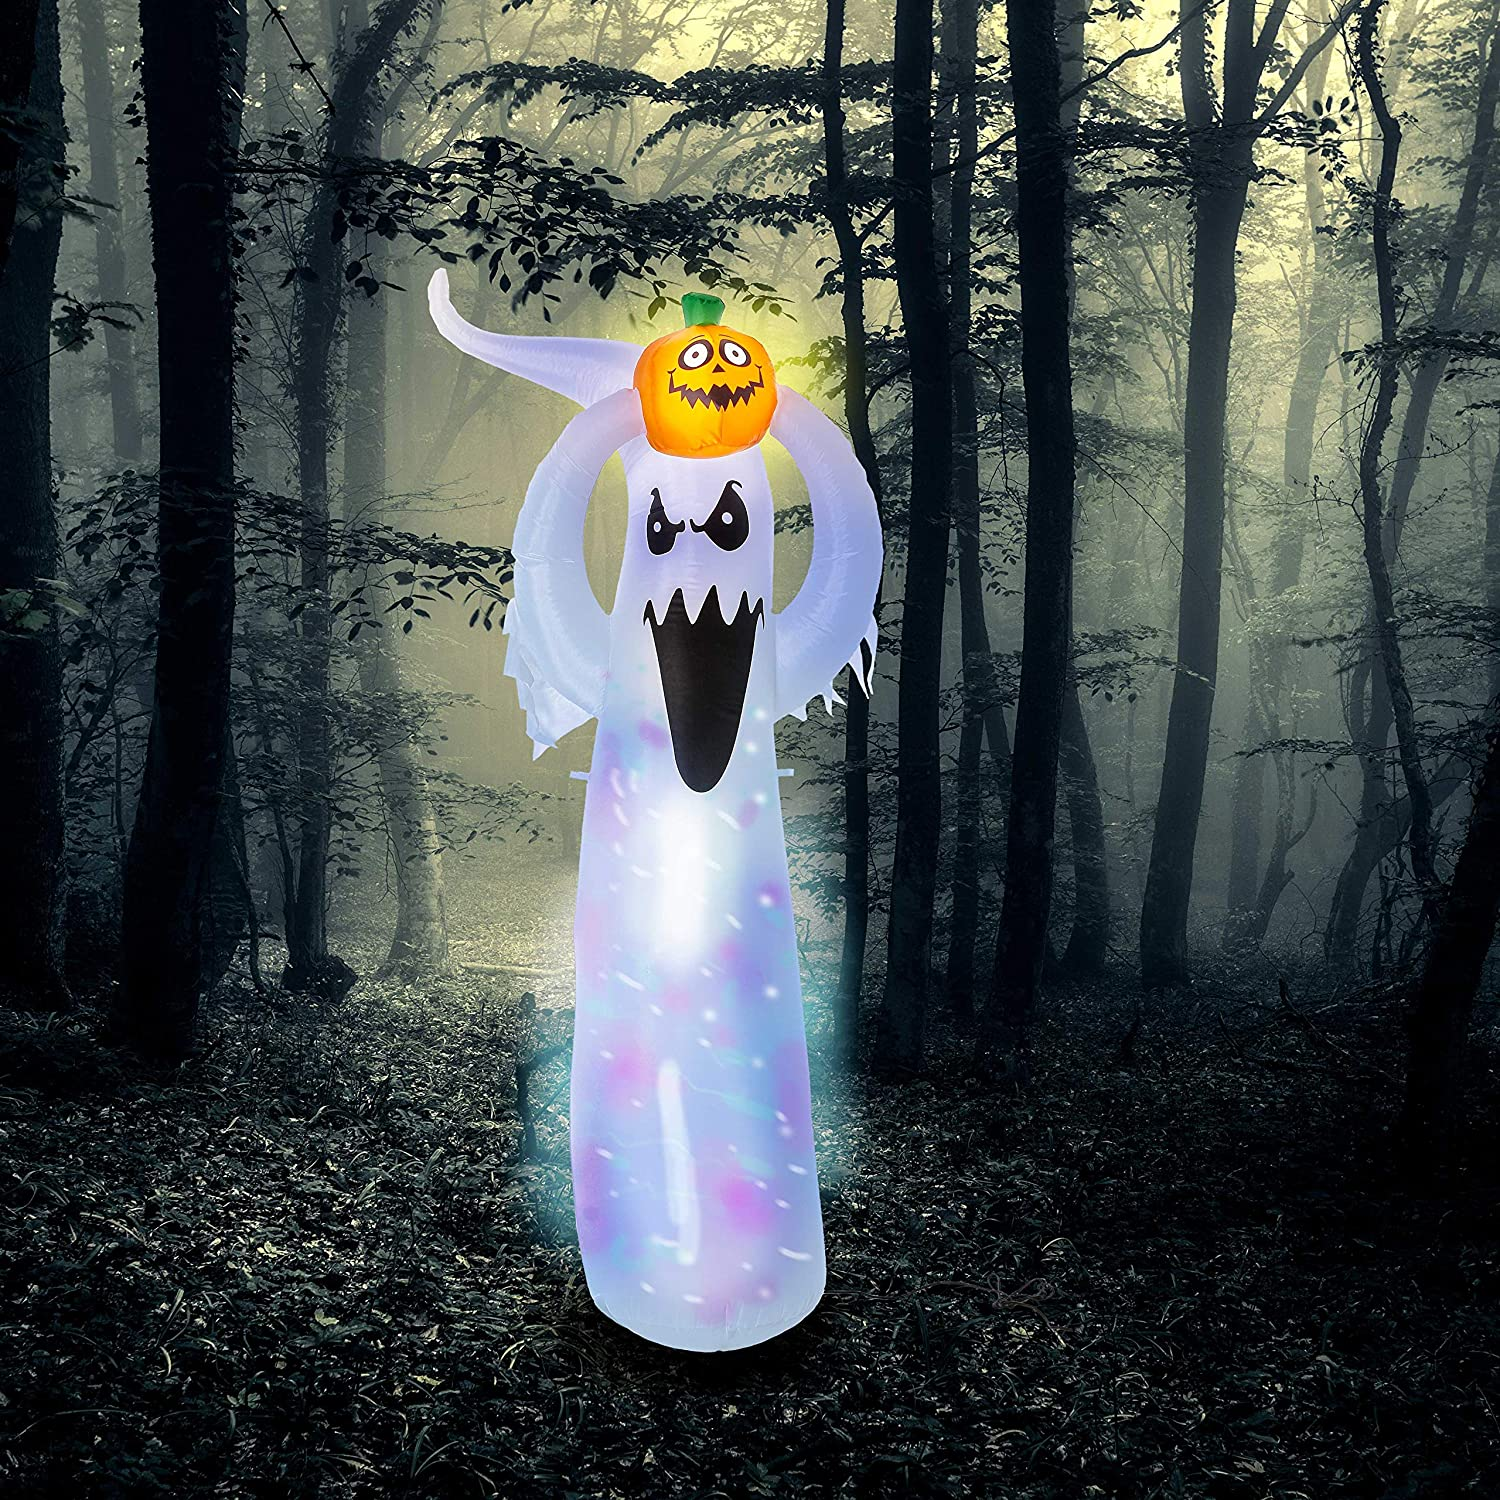 Halloween Haunters Bluetooth 6 Foot Inflatable Pumpkin with 3 Spooky White Ghosts with Bluetooth Speaker Yard Prop Decoration Animated Dancing Multi-Color LED Lights Indoor Outdoor Lawn Blow Up